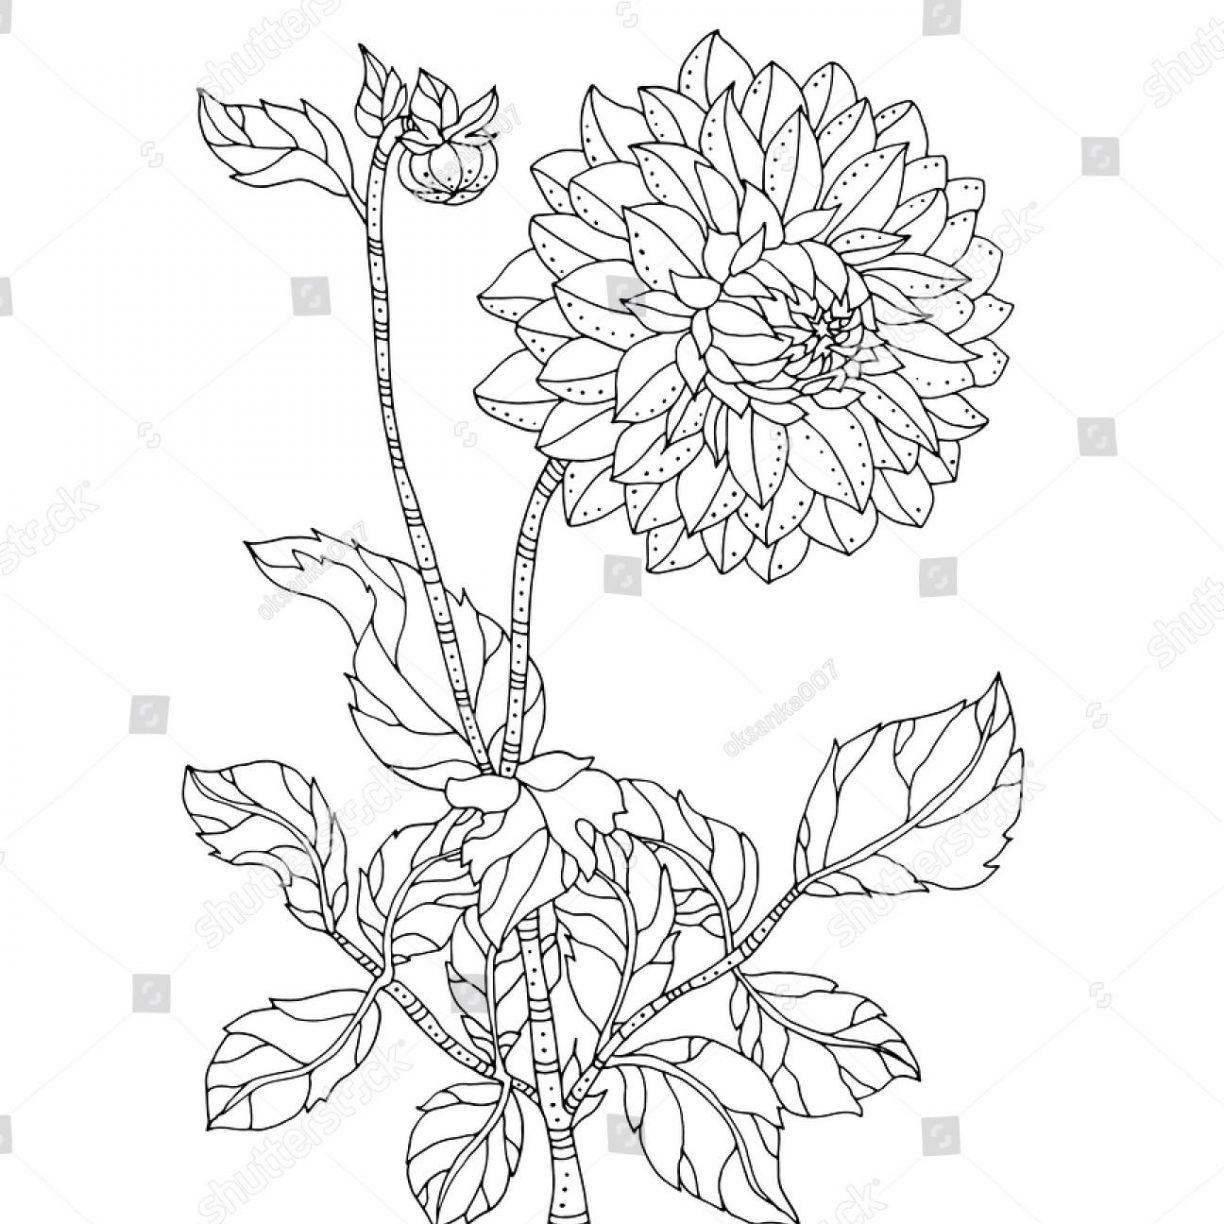 chrysanthemum coloring pages chrysanthemums drawing at getdrawings free download chrysanthemum coloring pages